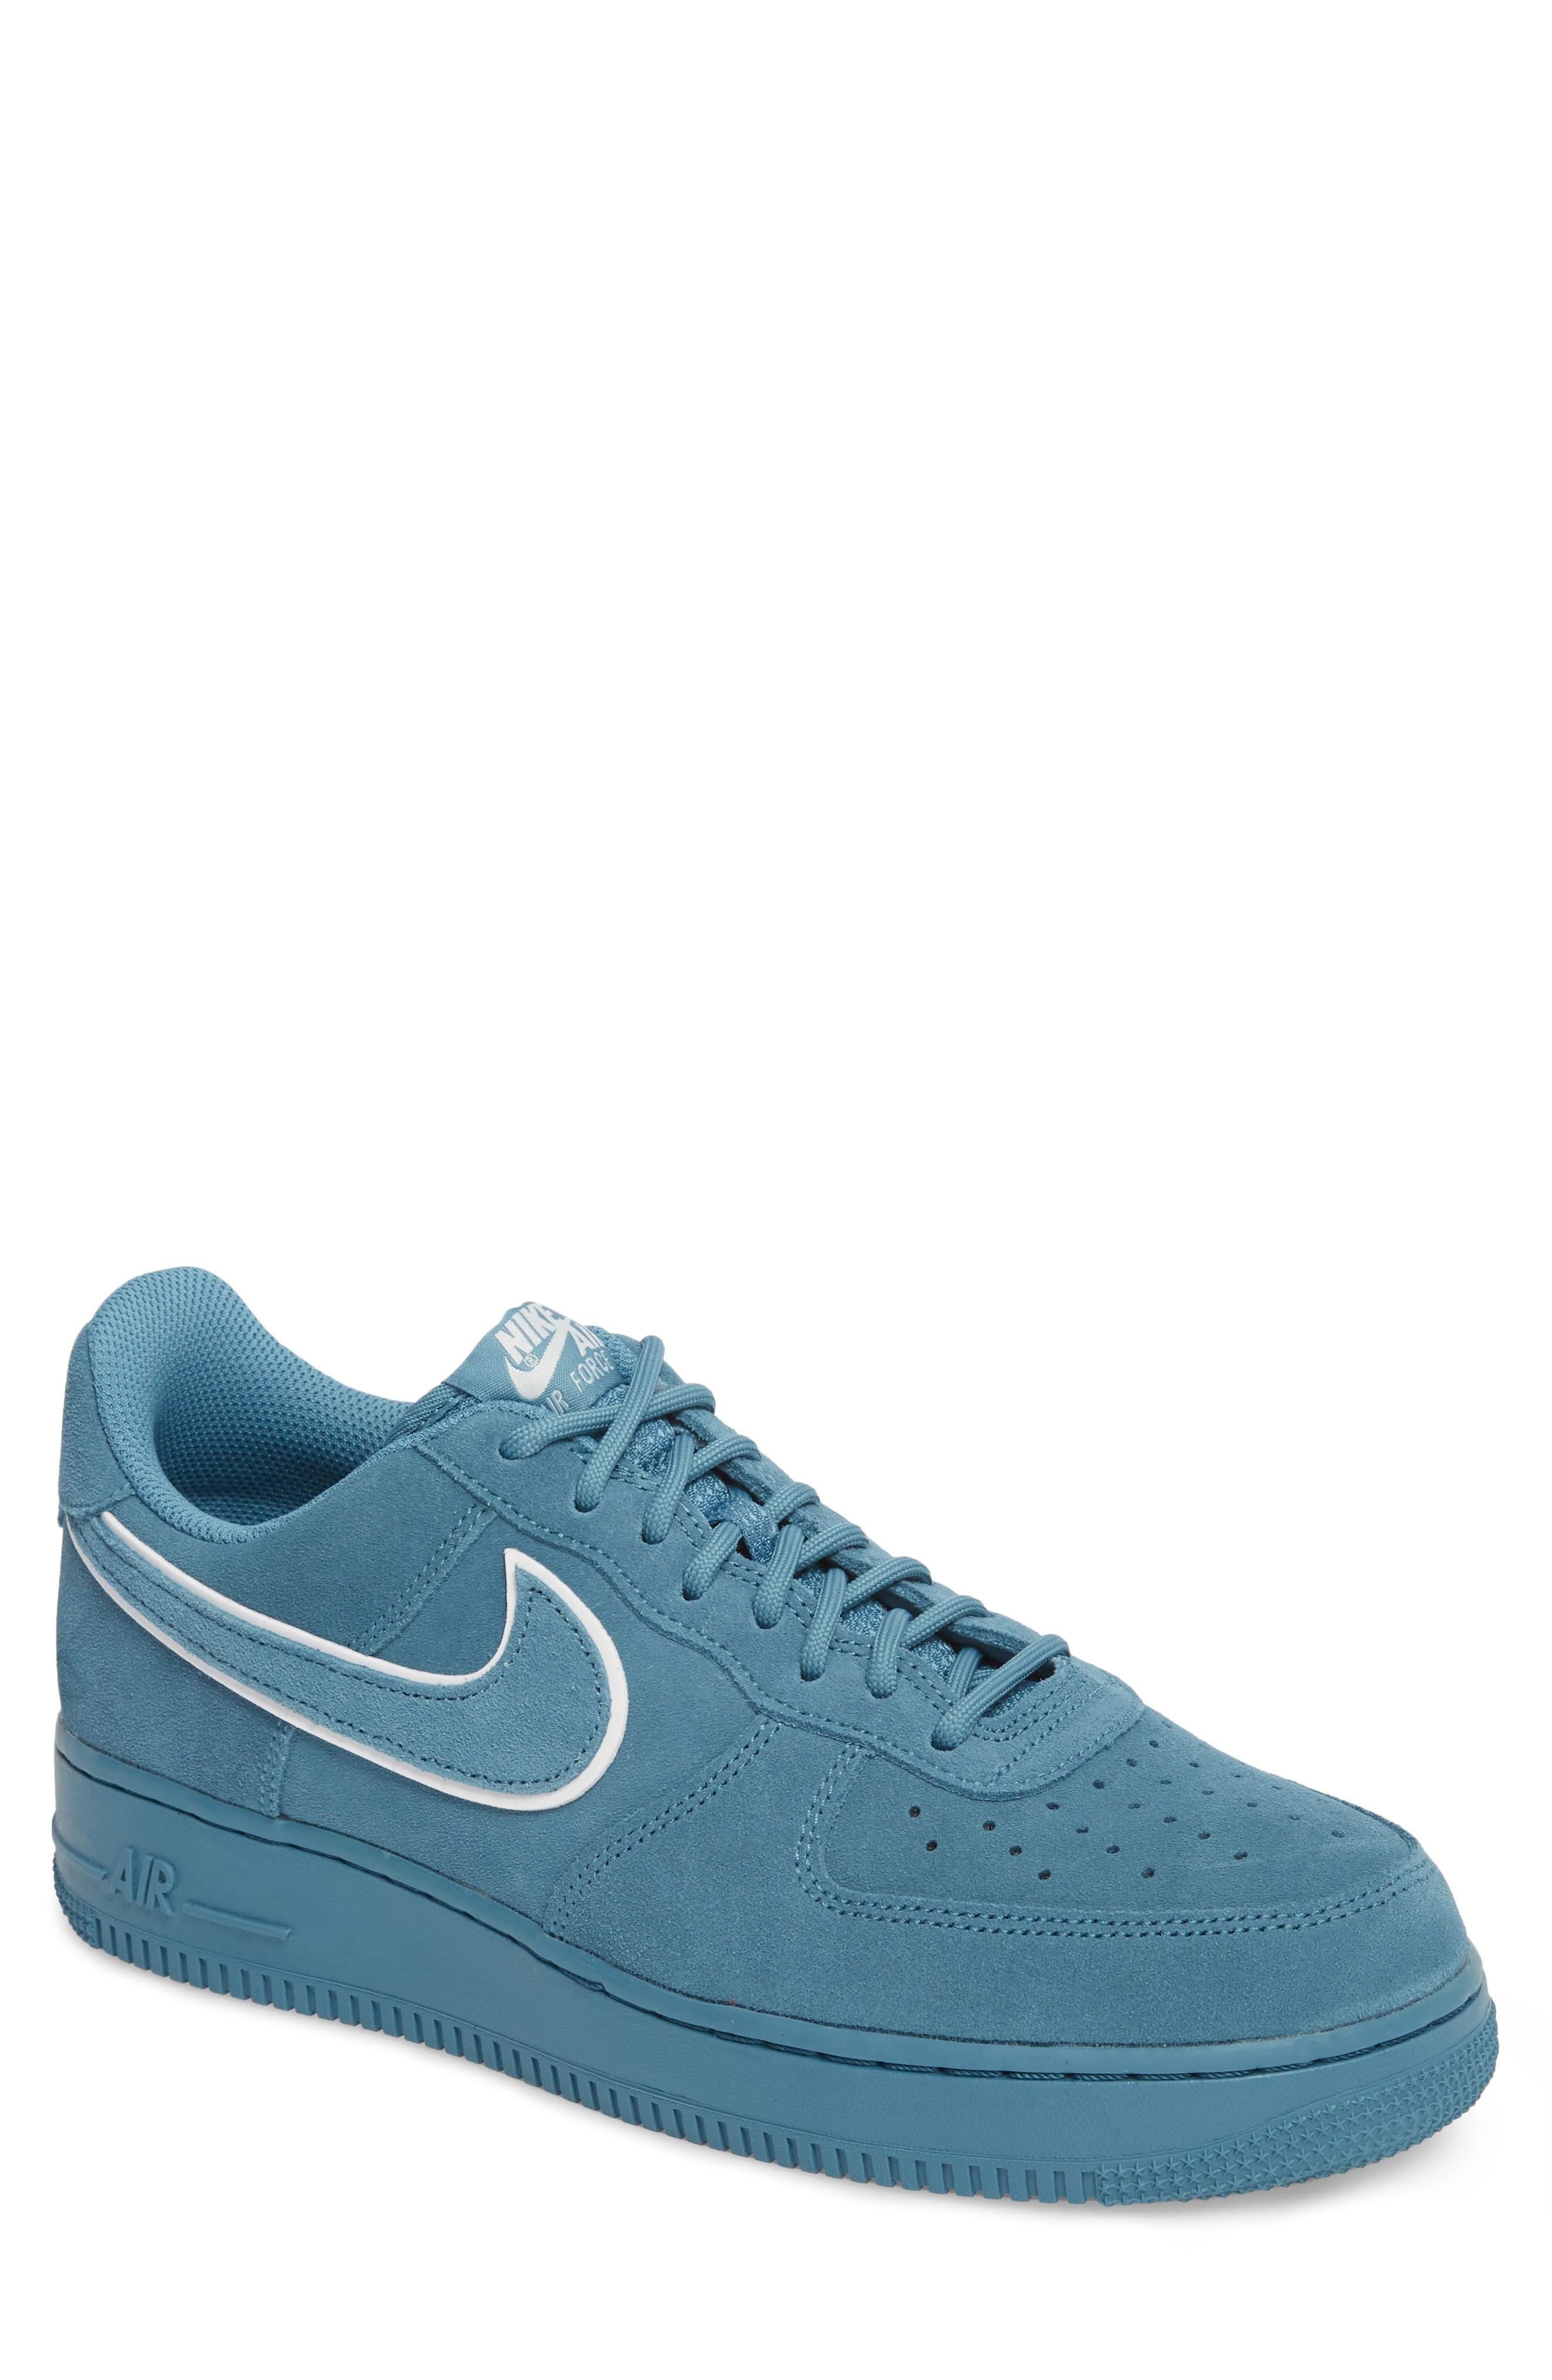 3ce6fd402d8 Nike Air Force 1  07 Low Lv8 Sneaker In Noise Aqua  Blue Force ...